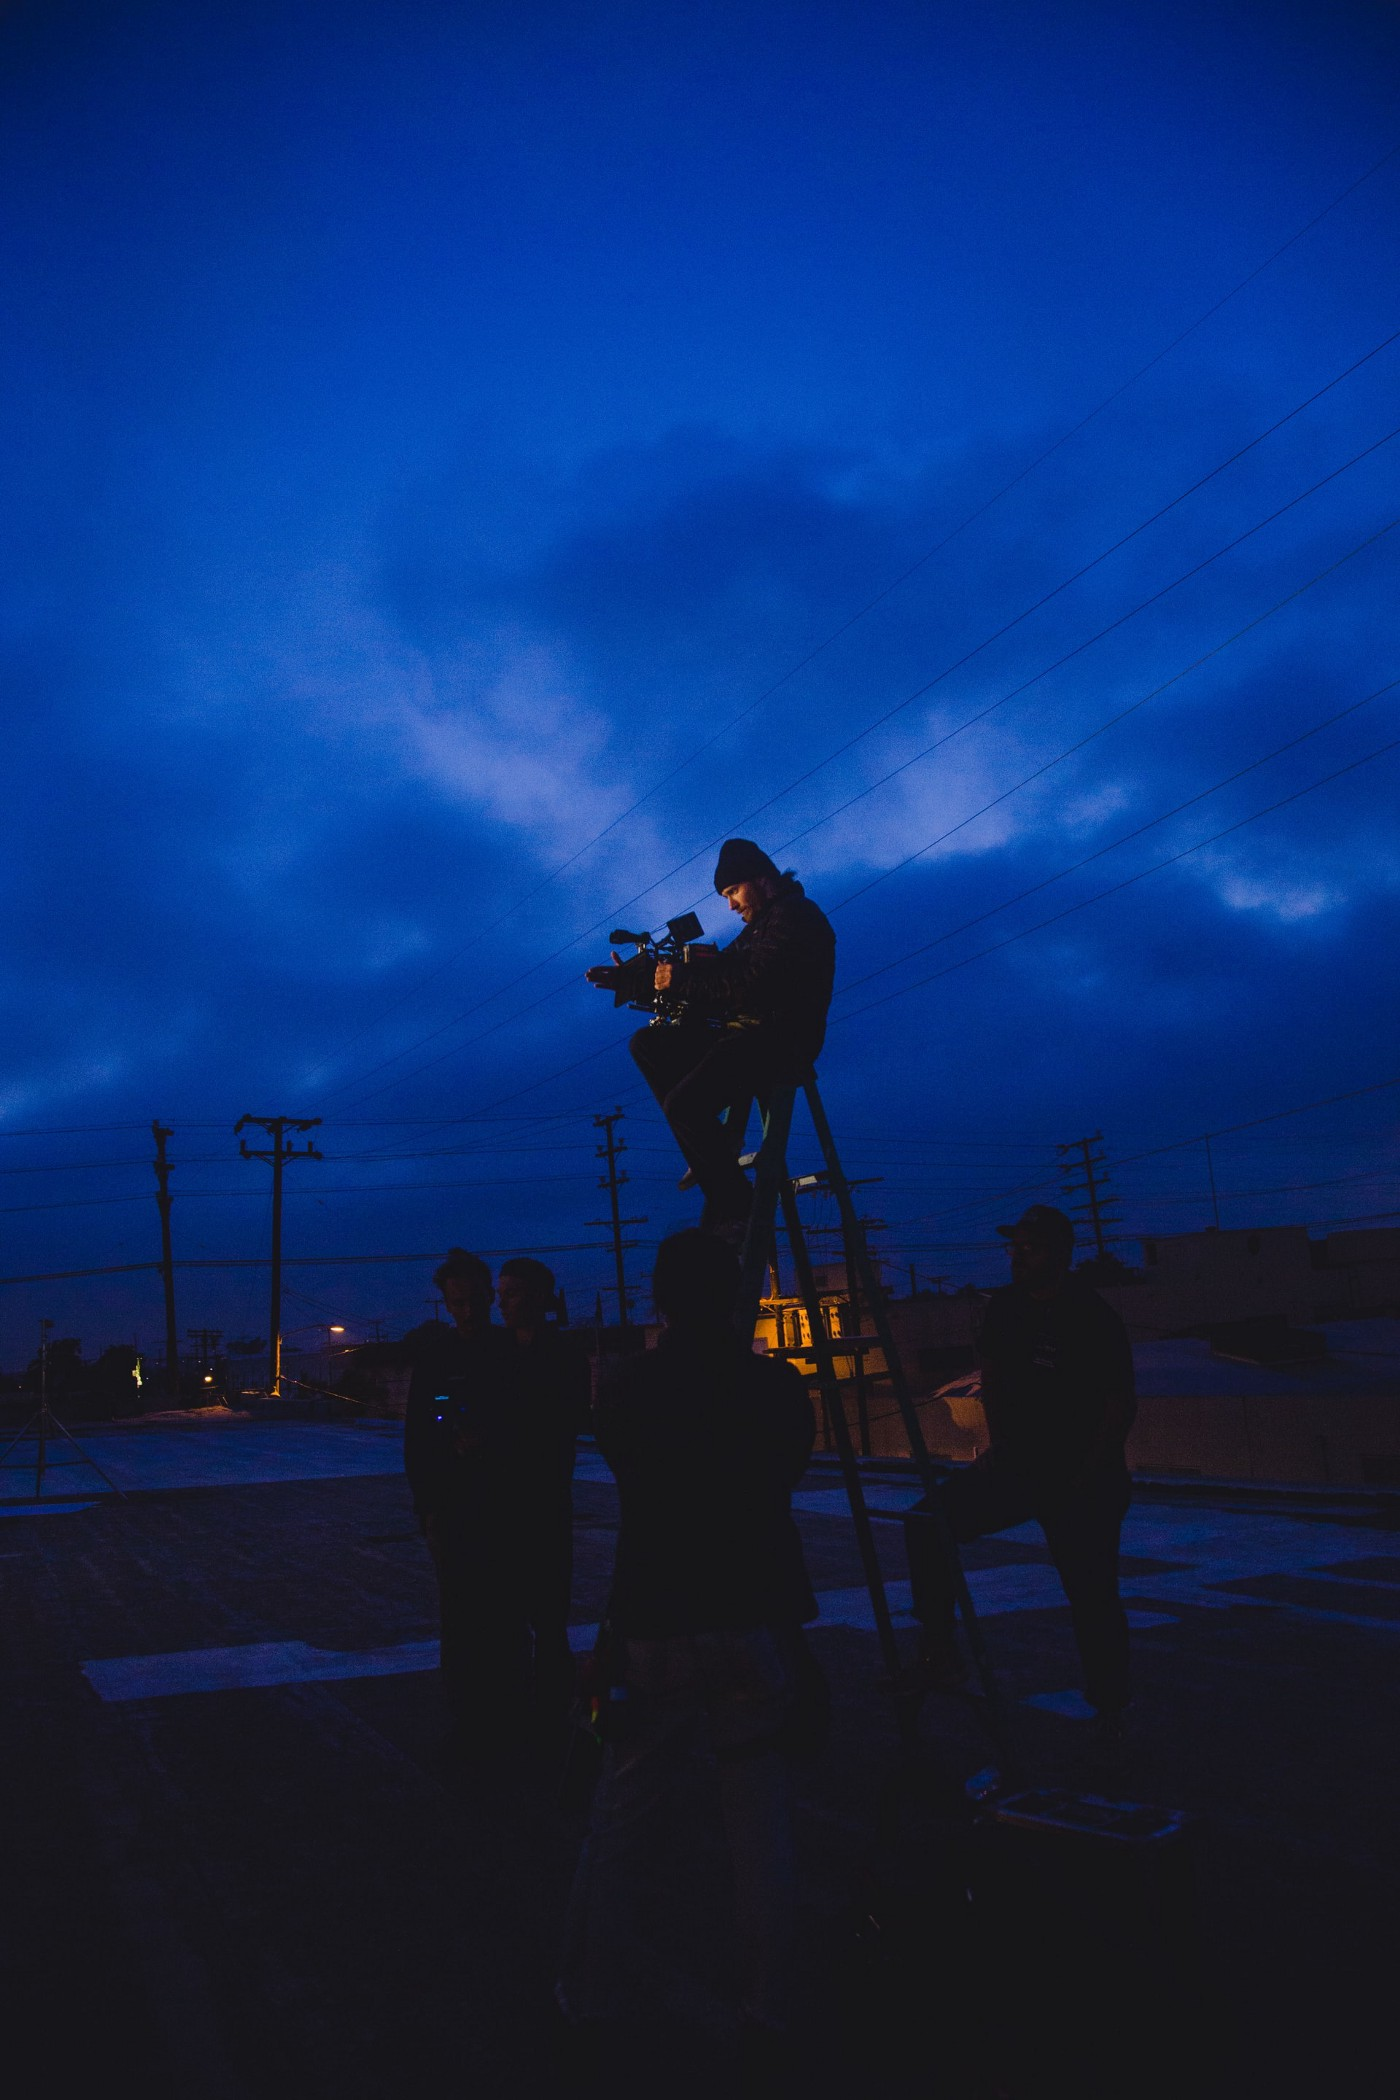 A camera operator sits on a stepladder against a blue night sky